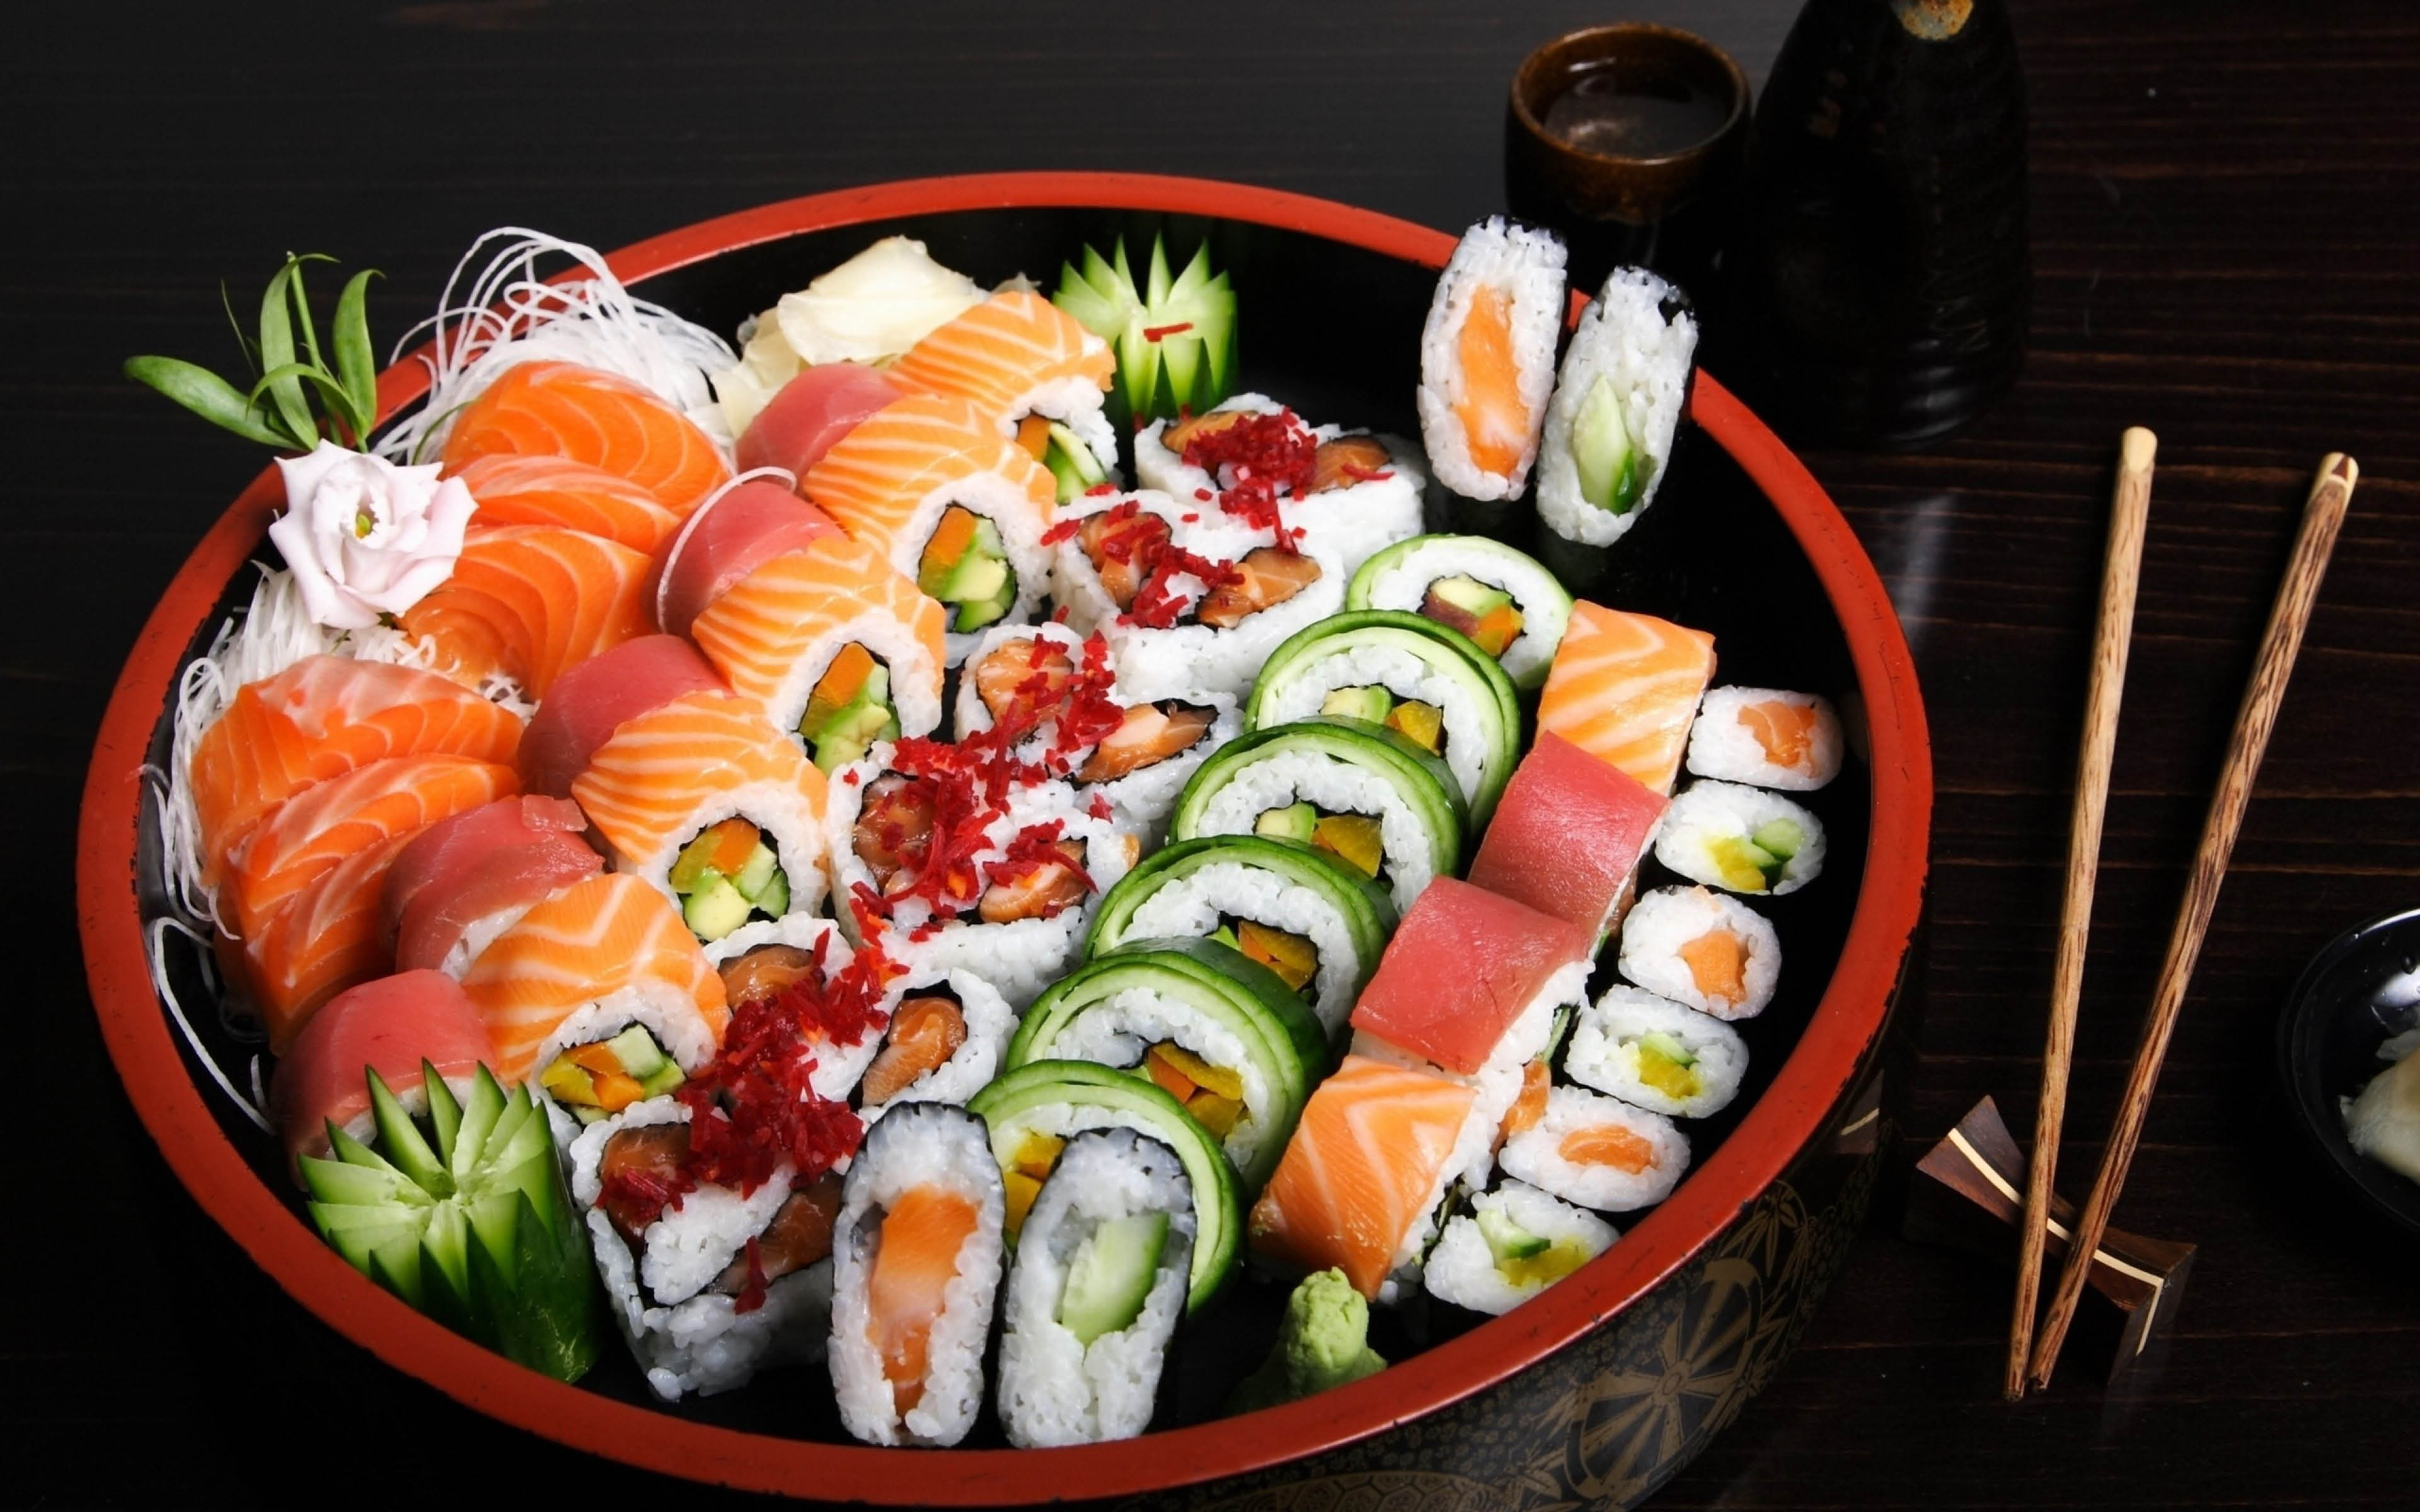 Sushi from Super 99 Buffet and Sushi Woodbury, Mn